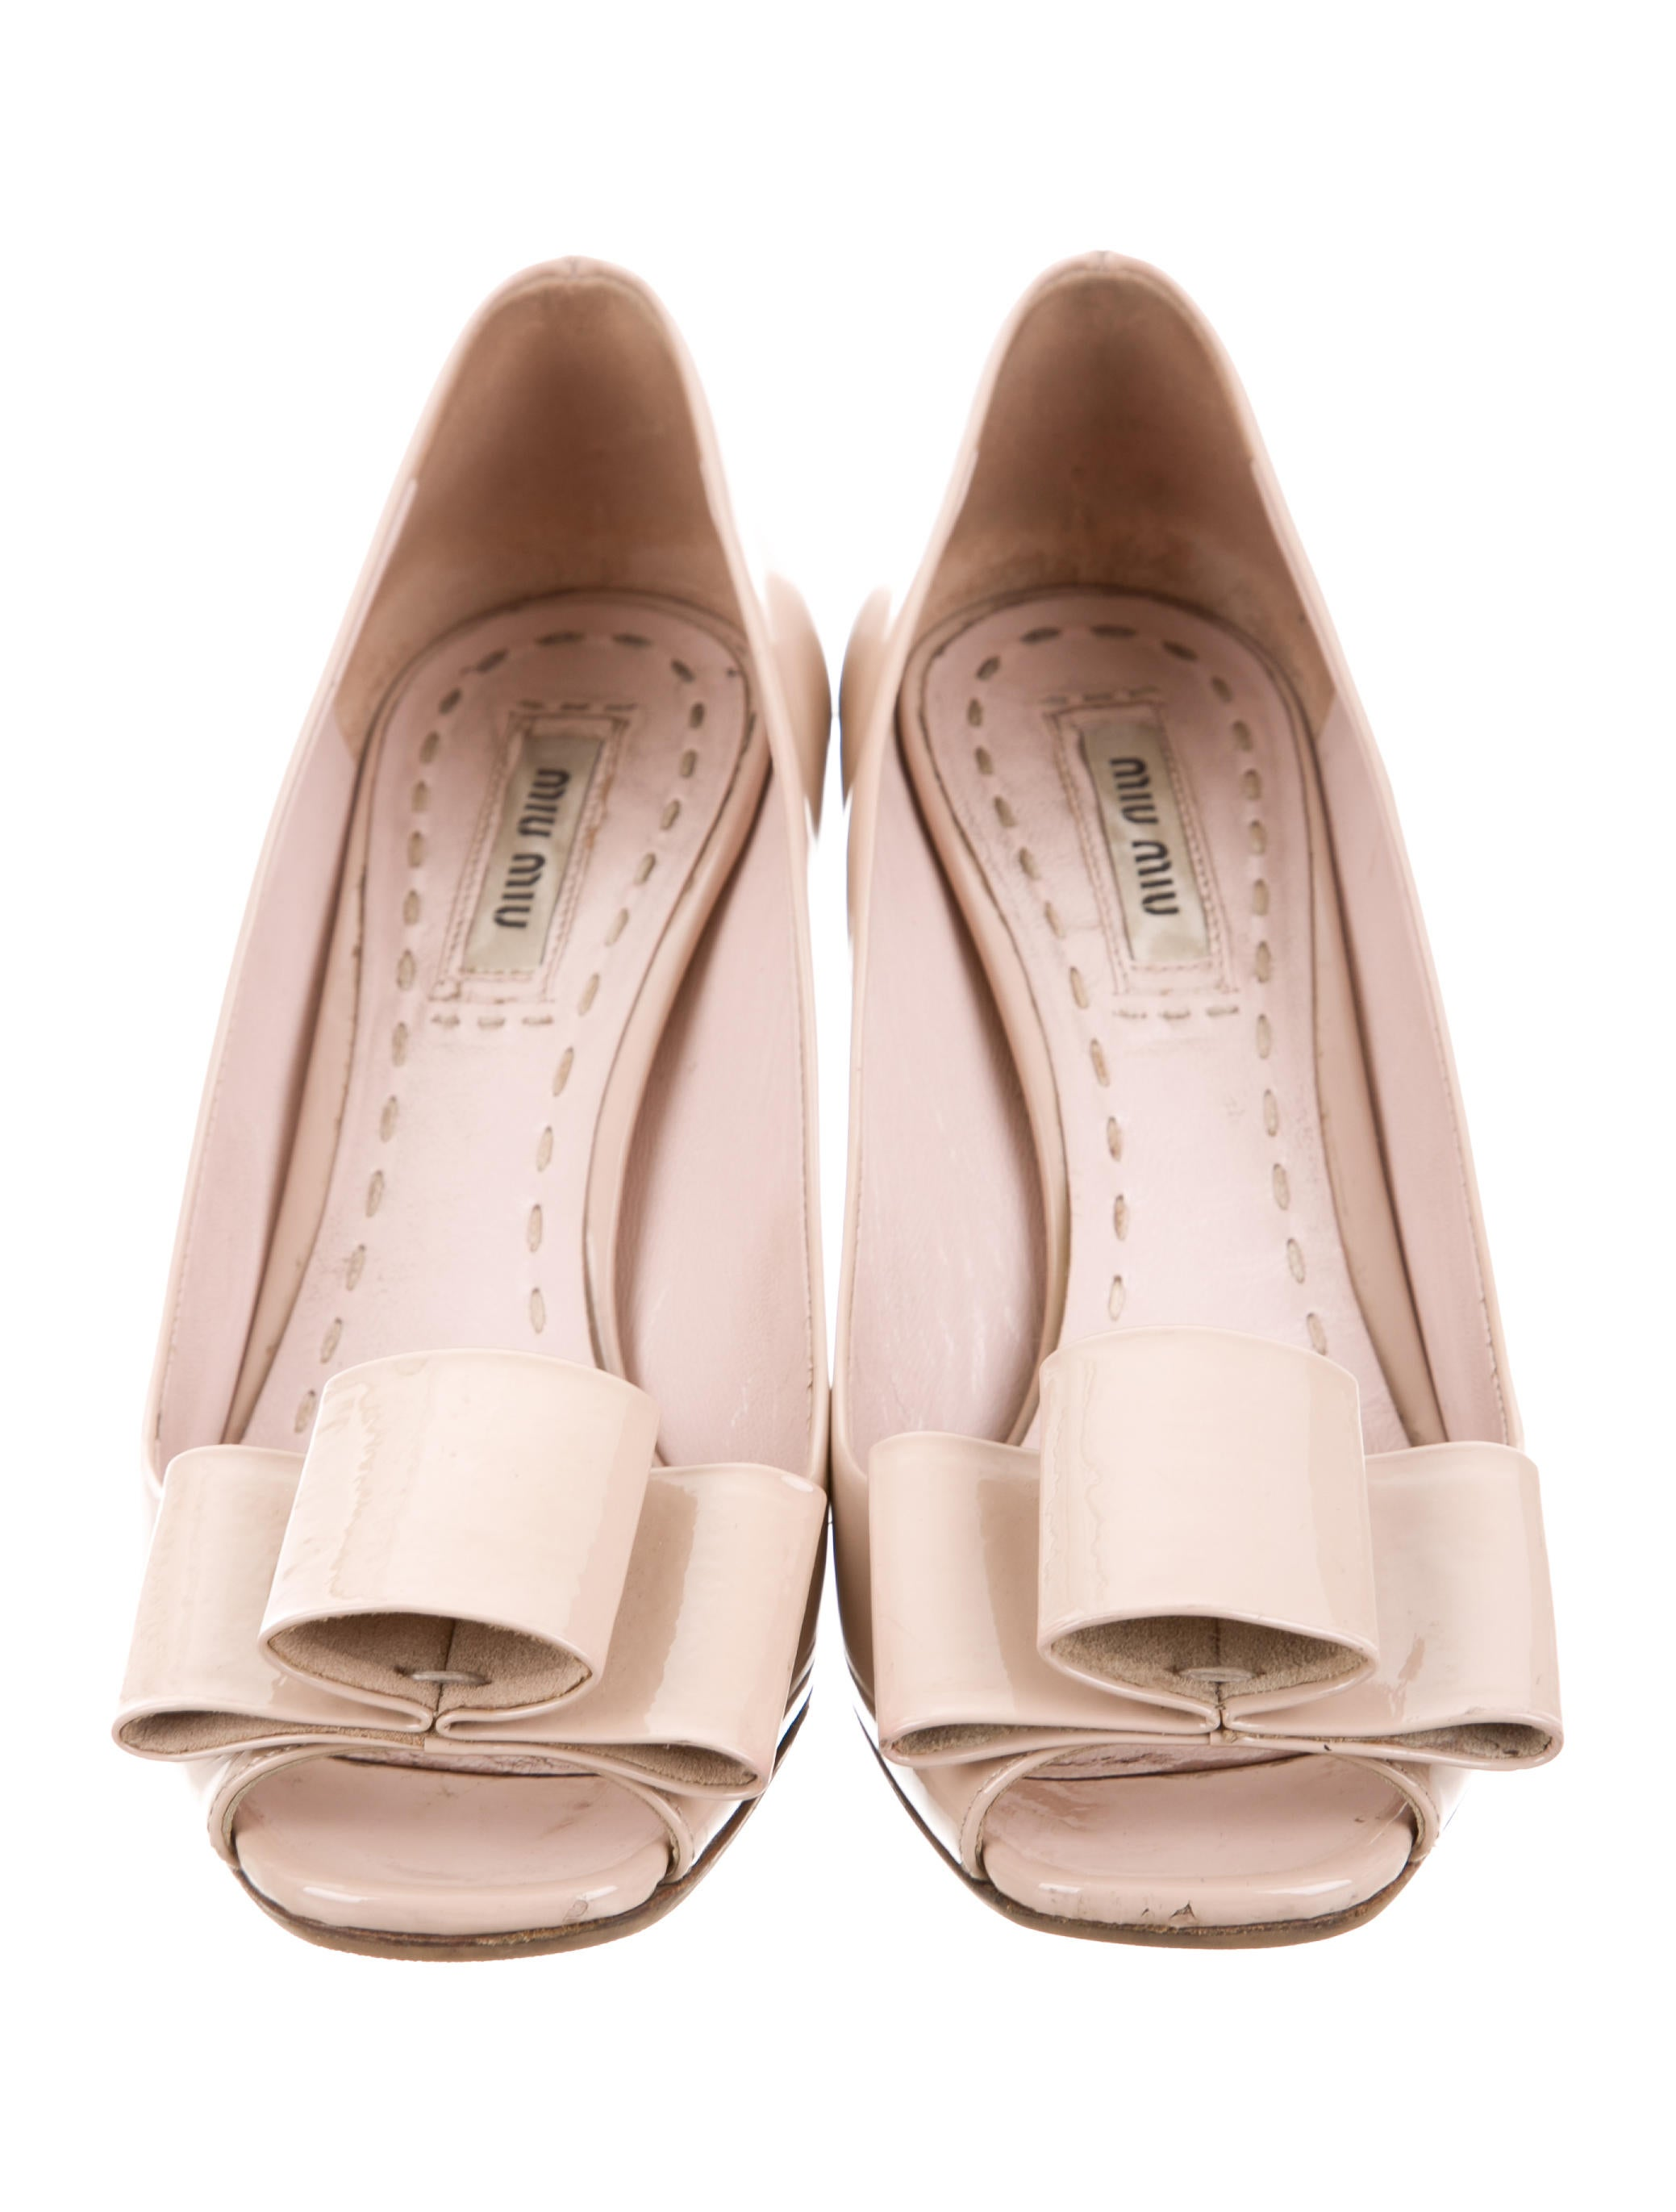 exclusive buy cheap great deals Miu Miu Bow-Accented Peep-Toe Pumps browse cheap online outlet online shop discount for cheap XipNRew3